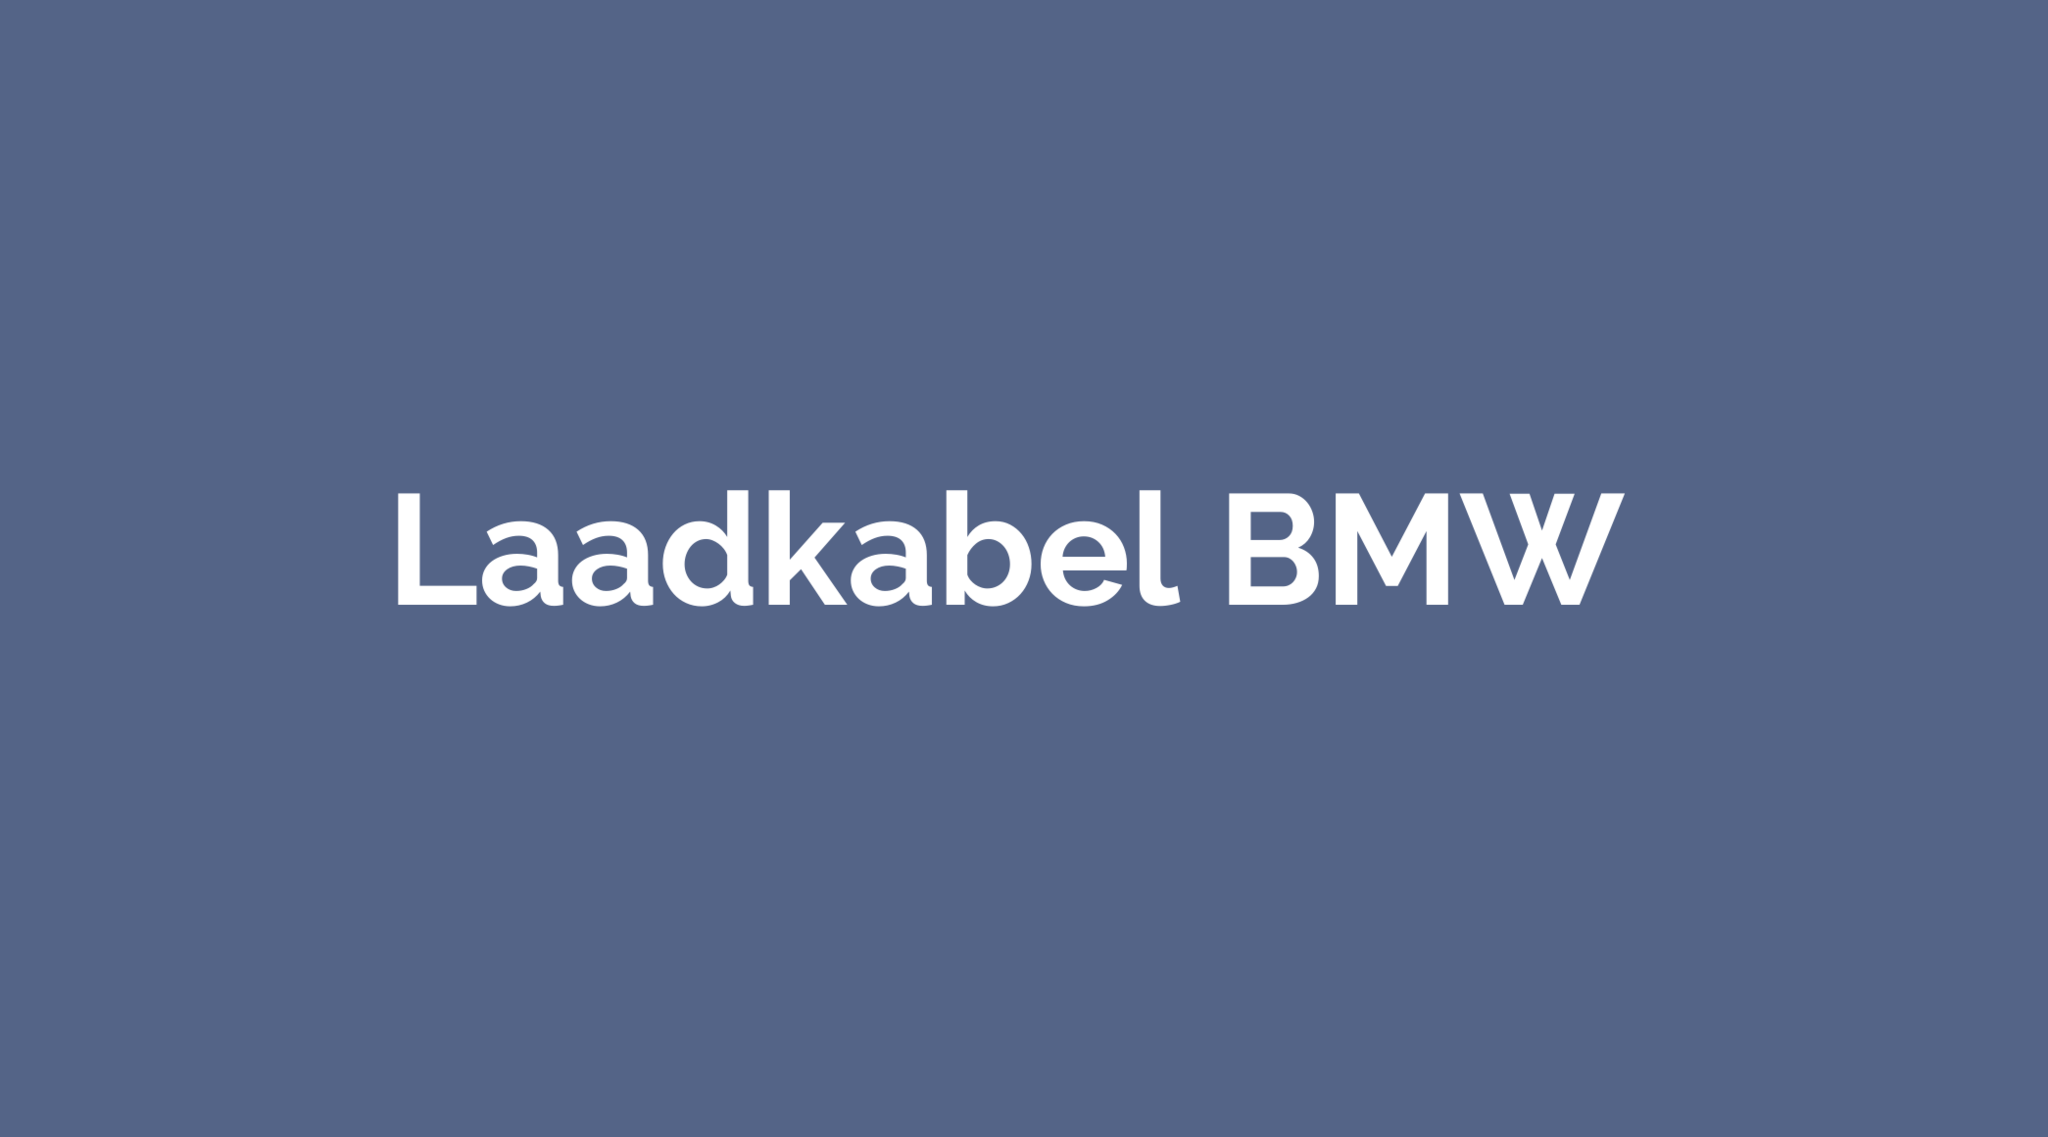 Laadkabel BMW